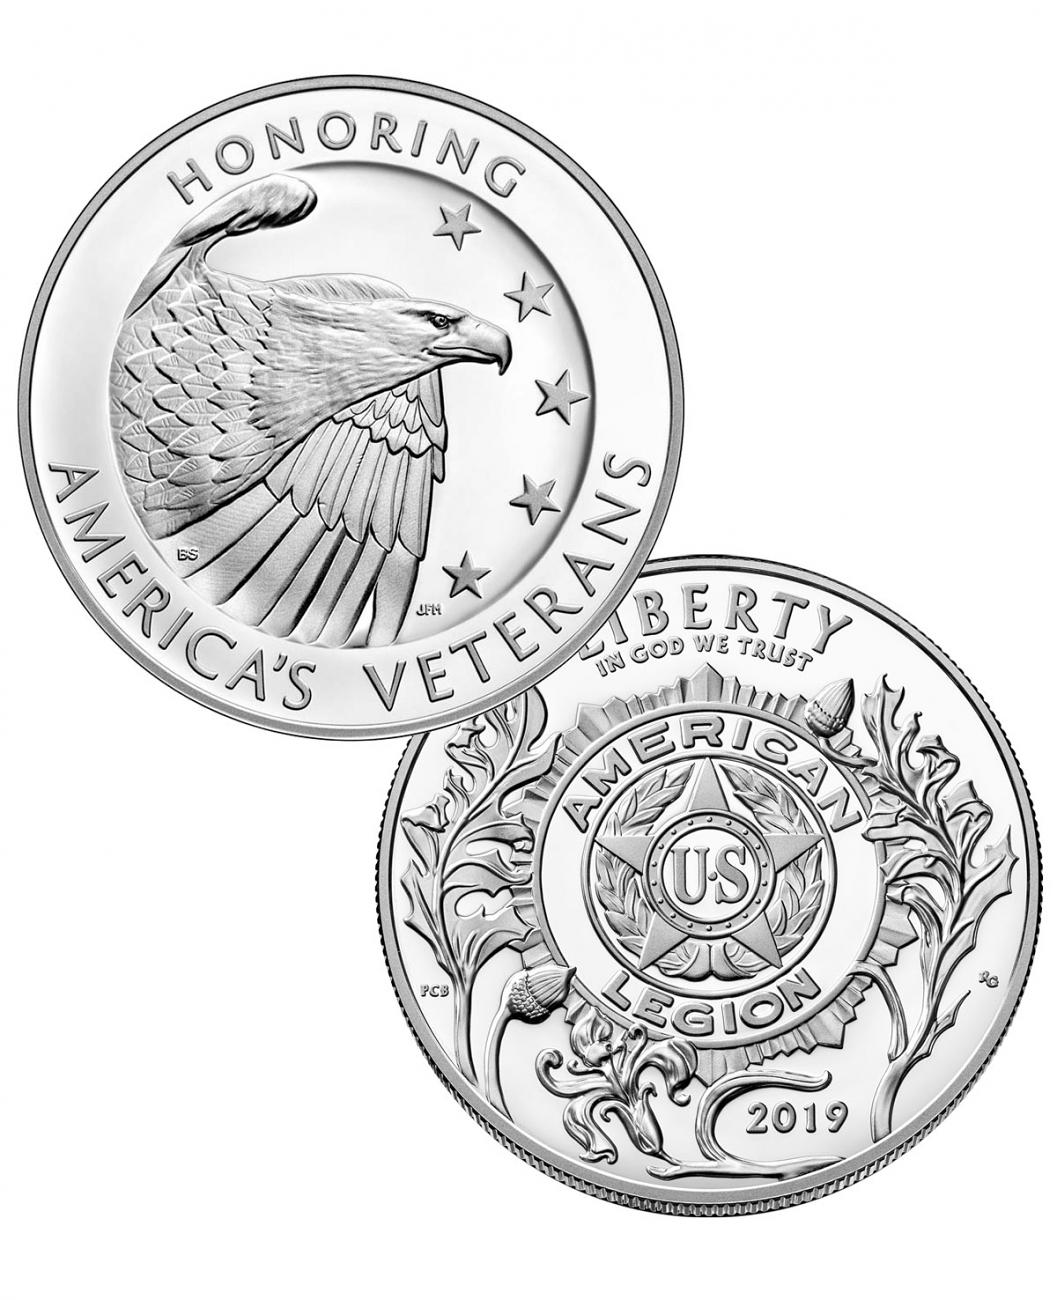 2-Piece Set - 2019-P American Legion 100th Anniversary Commemorative Silver Dollar and Medal Set GEM Proof